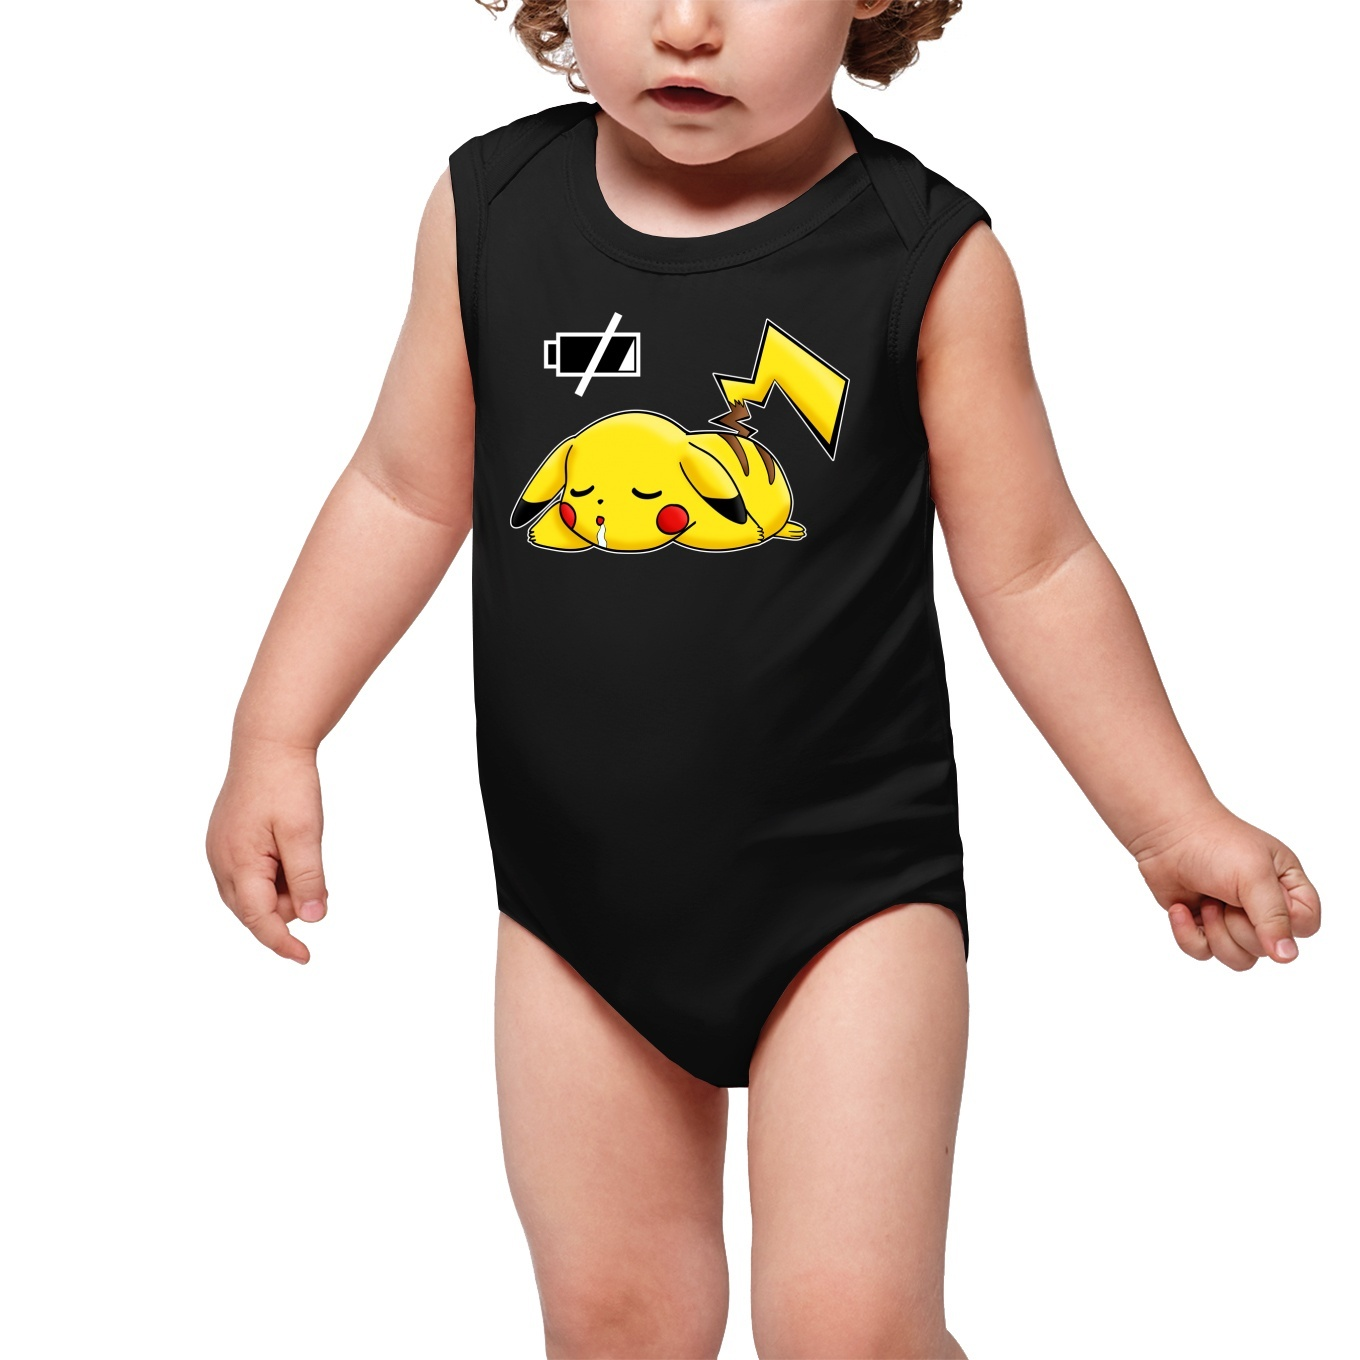 Sleeveless Baby Bodysuits Video Games Parodies